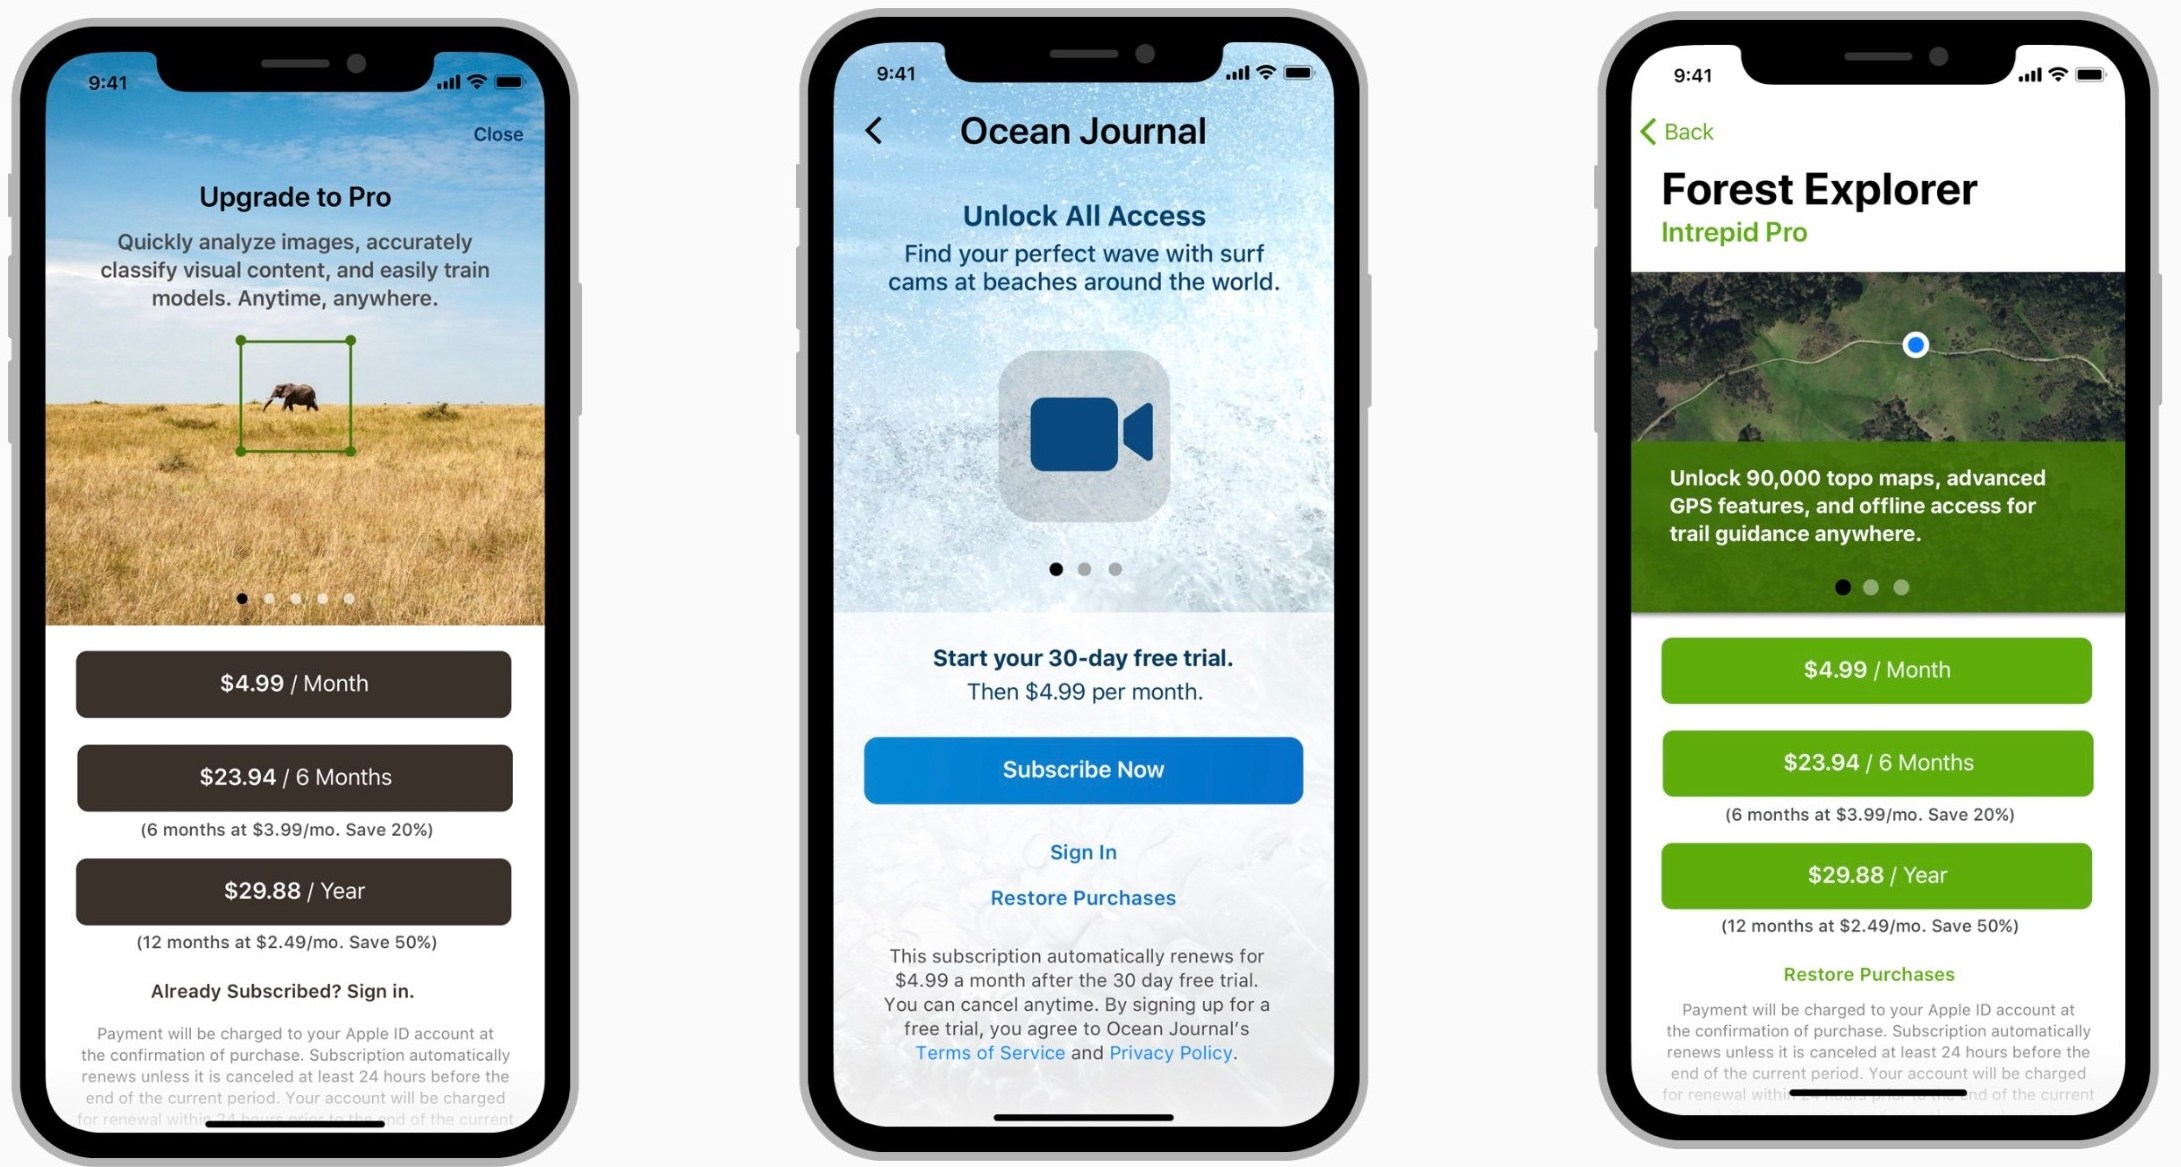 iOS 12 2 brings new discount options for auto-renewing